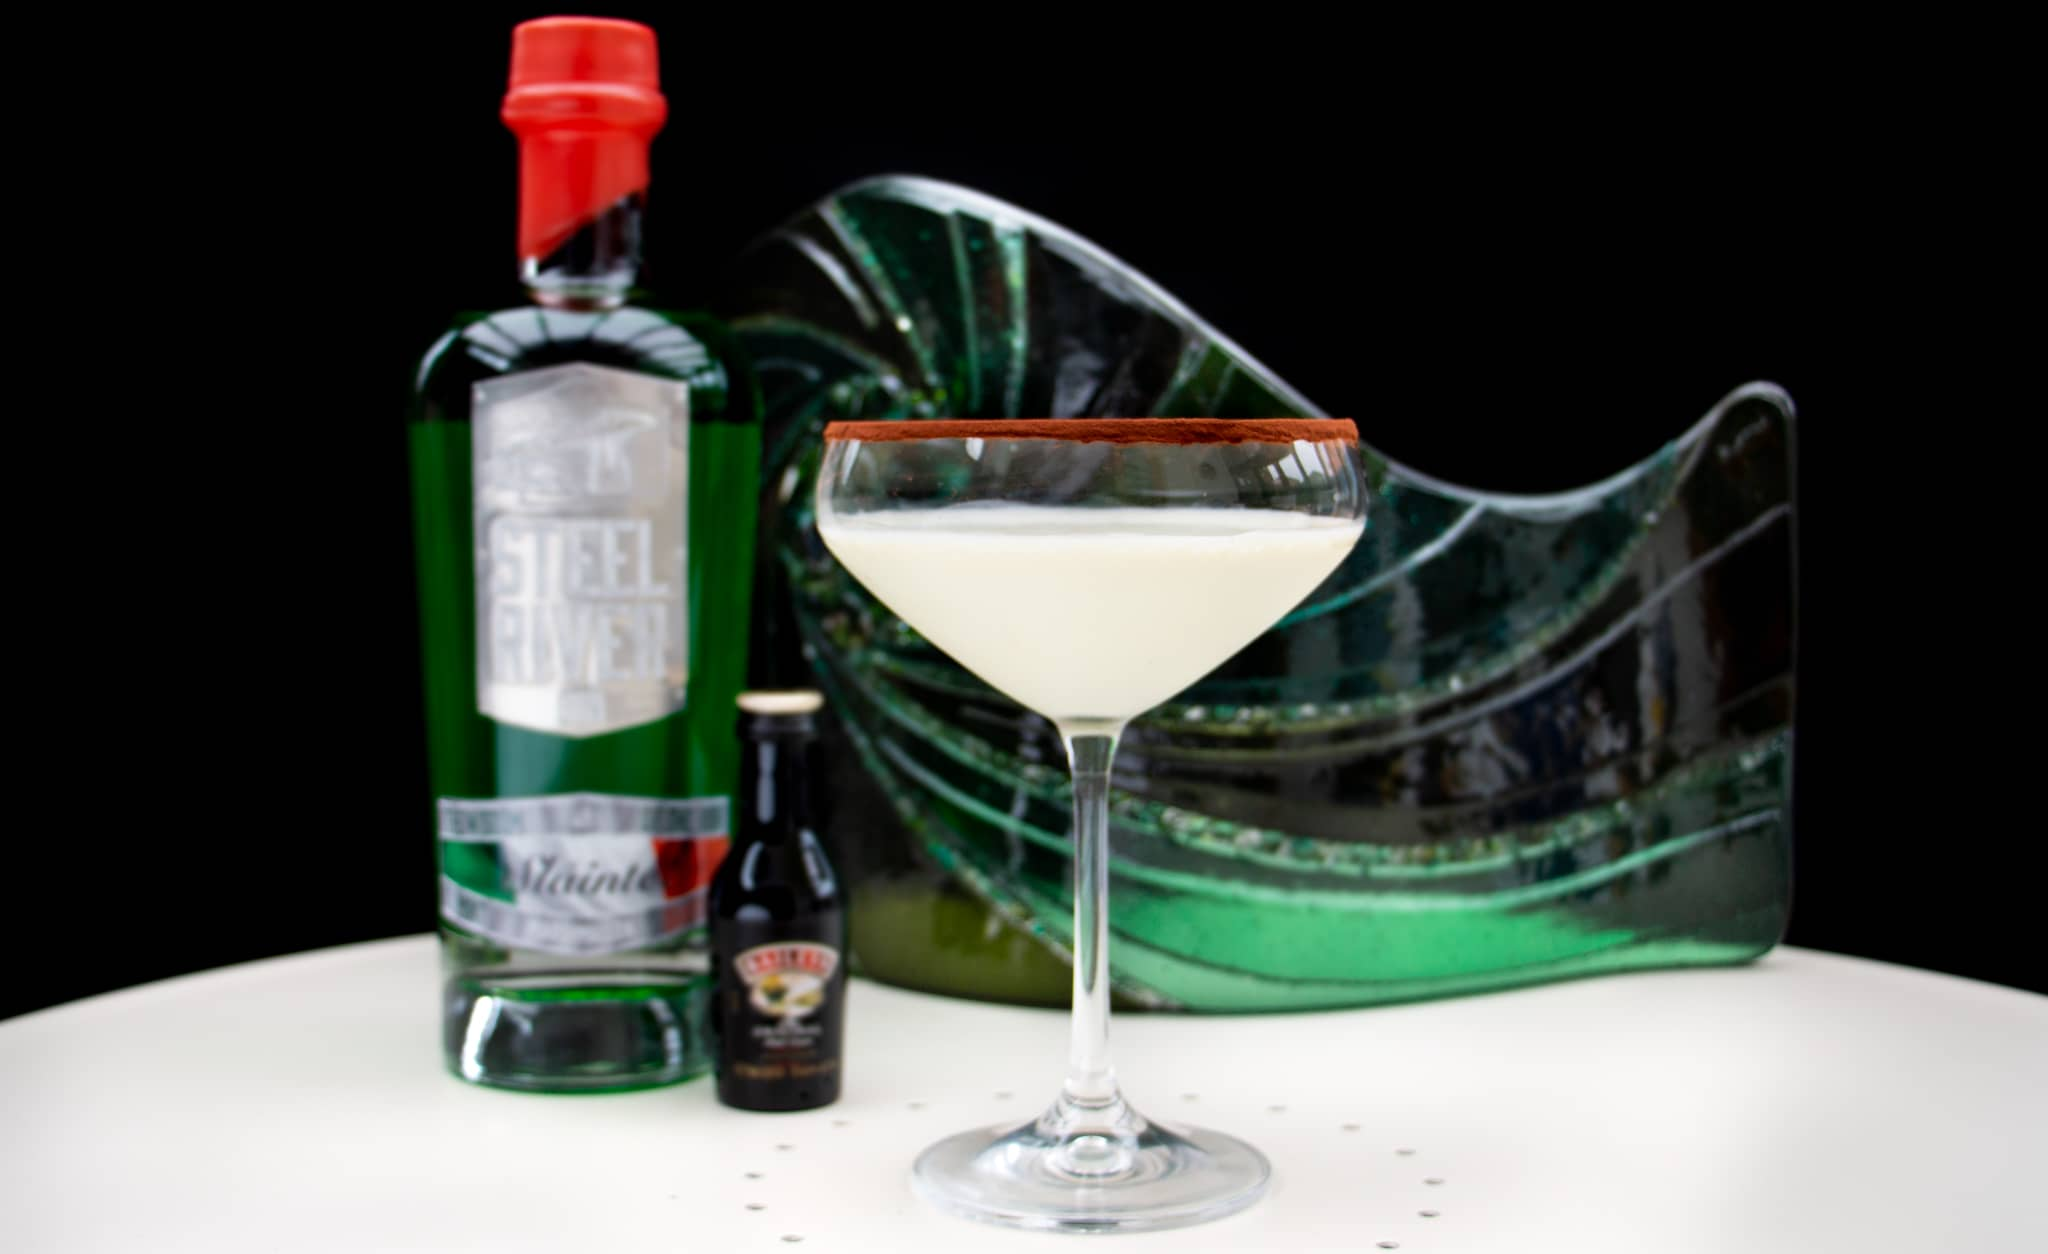 Irish Cream Martini in a glass rimmed with chocolate. Small baileys bottle and 70cl Green gin bottle